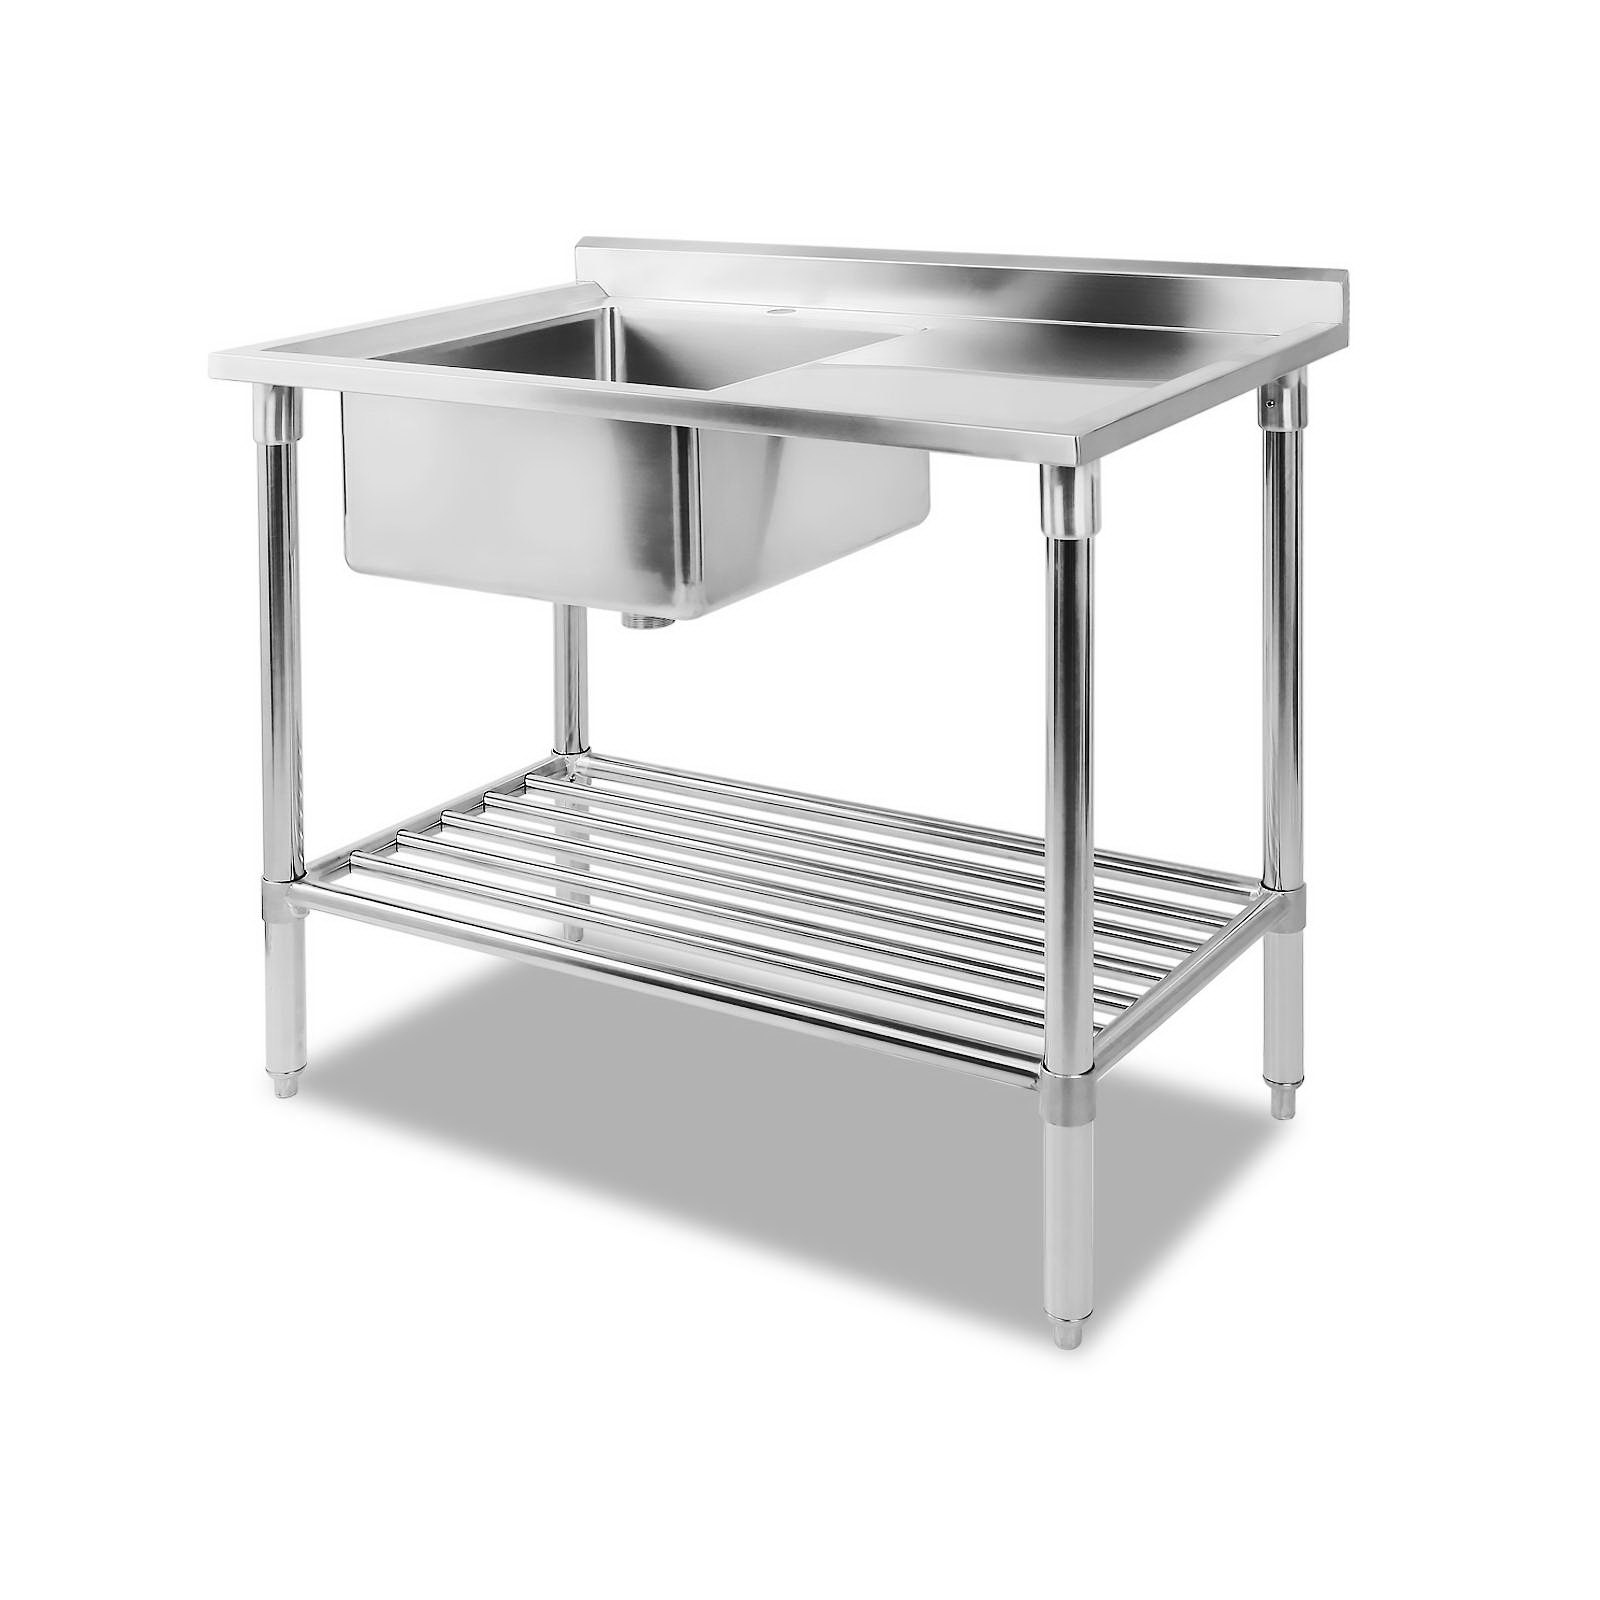 New Cefito 100x60cm Commercial Stainless Steel Sink Kitchen Bench + Fast Free Shipping